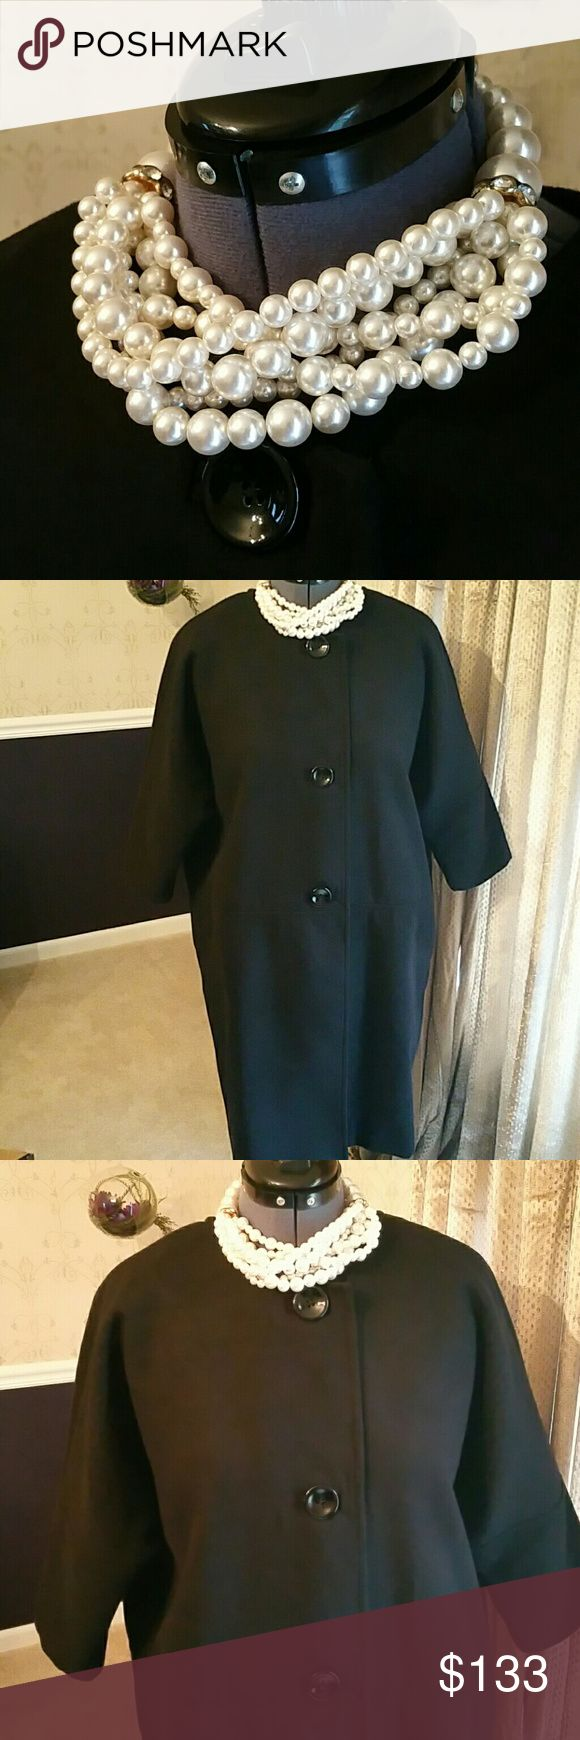 SPIEGEL Audrey Hepburn Quarter Length Sleeve Coat I ACCEPT OFFERS! I NEVER DECLINE OFFERS! I ACCEPT OR COUNTER ONLY!   NWT....Classic Fashion Statement Black Quarter Length Sleeve Coat.  FREE Oval Necklace with purchase. Full Lining.  Size: 10  Material: 35% Acrylic 65% Polyester   Some items are in New Condition and others in Newly-Used Condition.  Washed items have been washed but Dry Ckean Only needs Dry Cleaning. The clothing have been fully Inspected and ready for shipment.  If I missed…